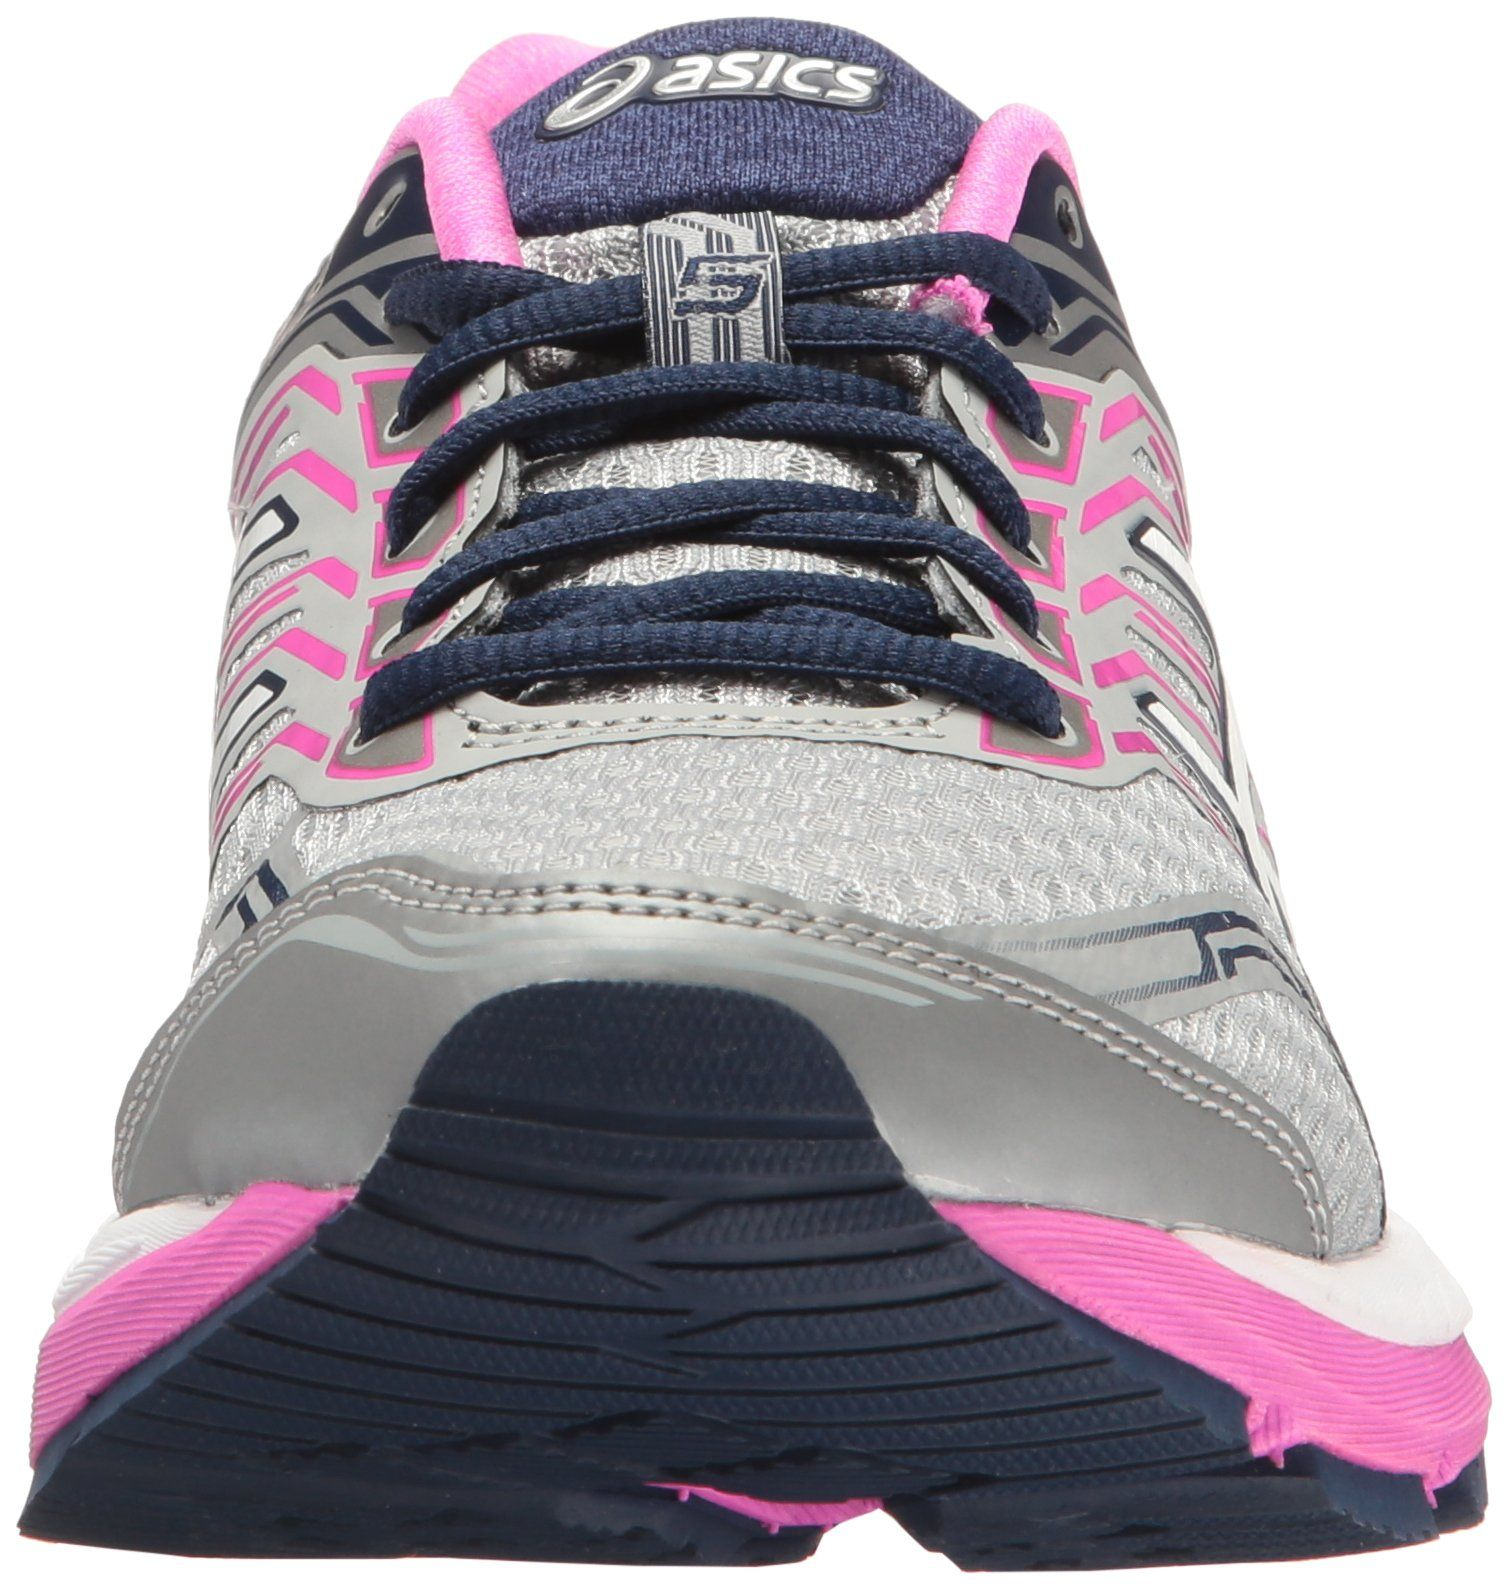 best sneakers b95fa 74d03 ASICS Womens GT2000 5 Running Shoe Mid Grey White Pink Glow 9.5 2E US      See this great product. (This is an affiliate link)